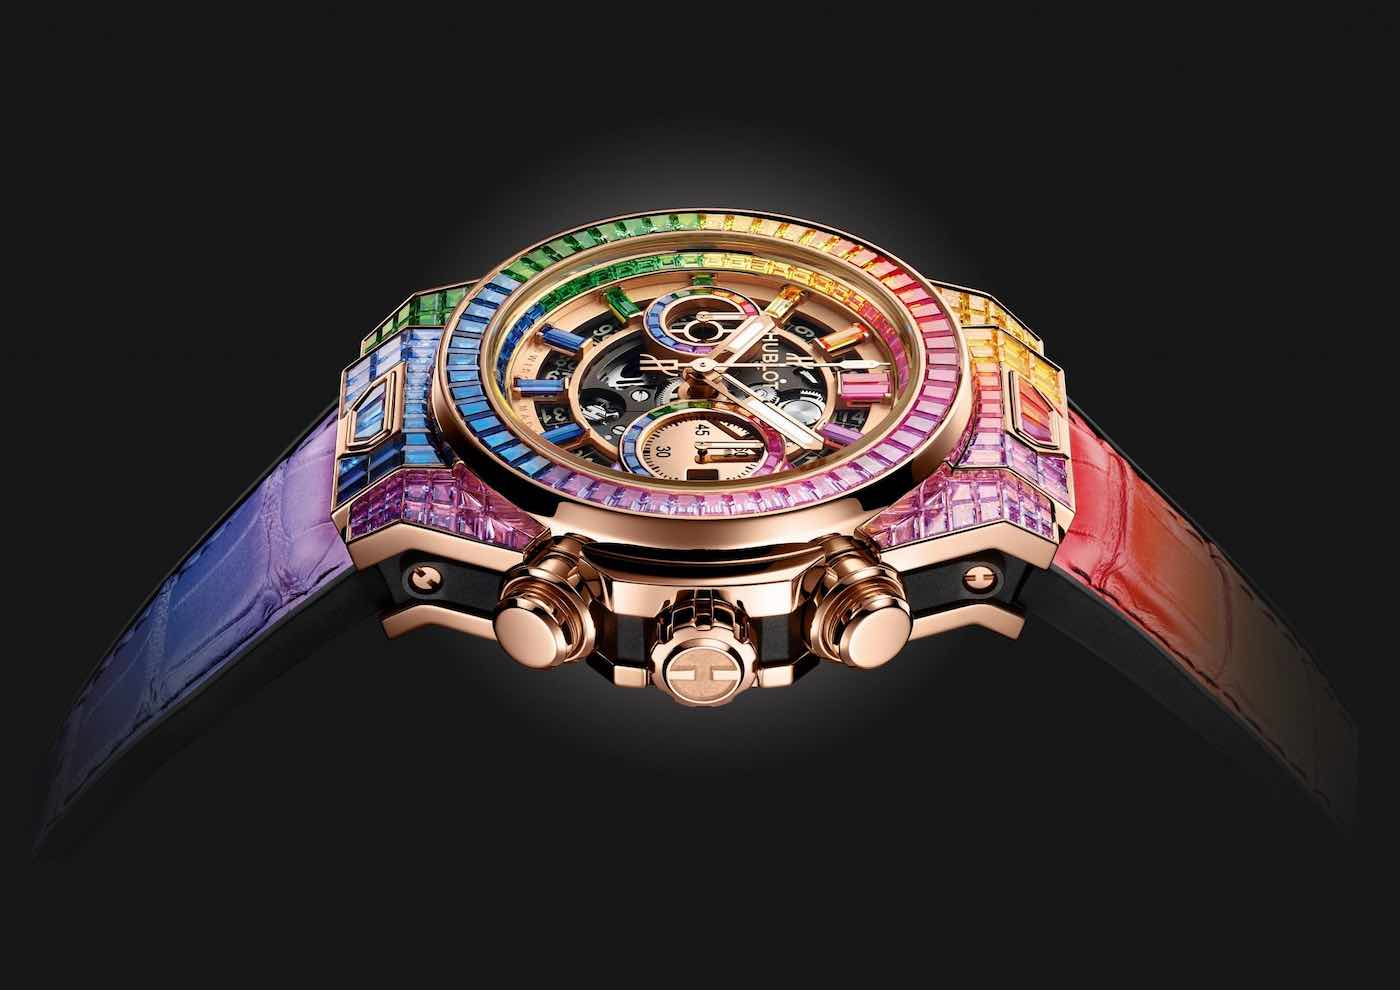 Hublot Big Bang Unico Full Baguette King Gold Rainbow con 290 piedras preciosas y oro de 24 quilates